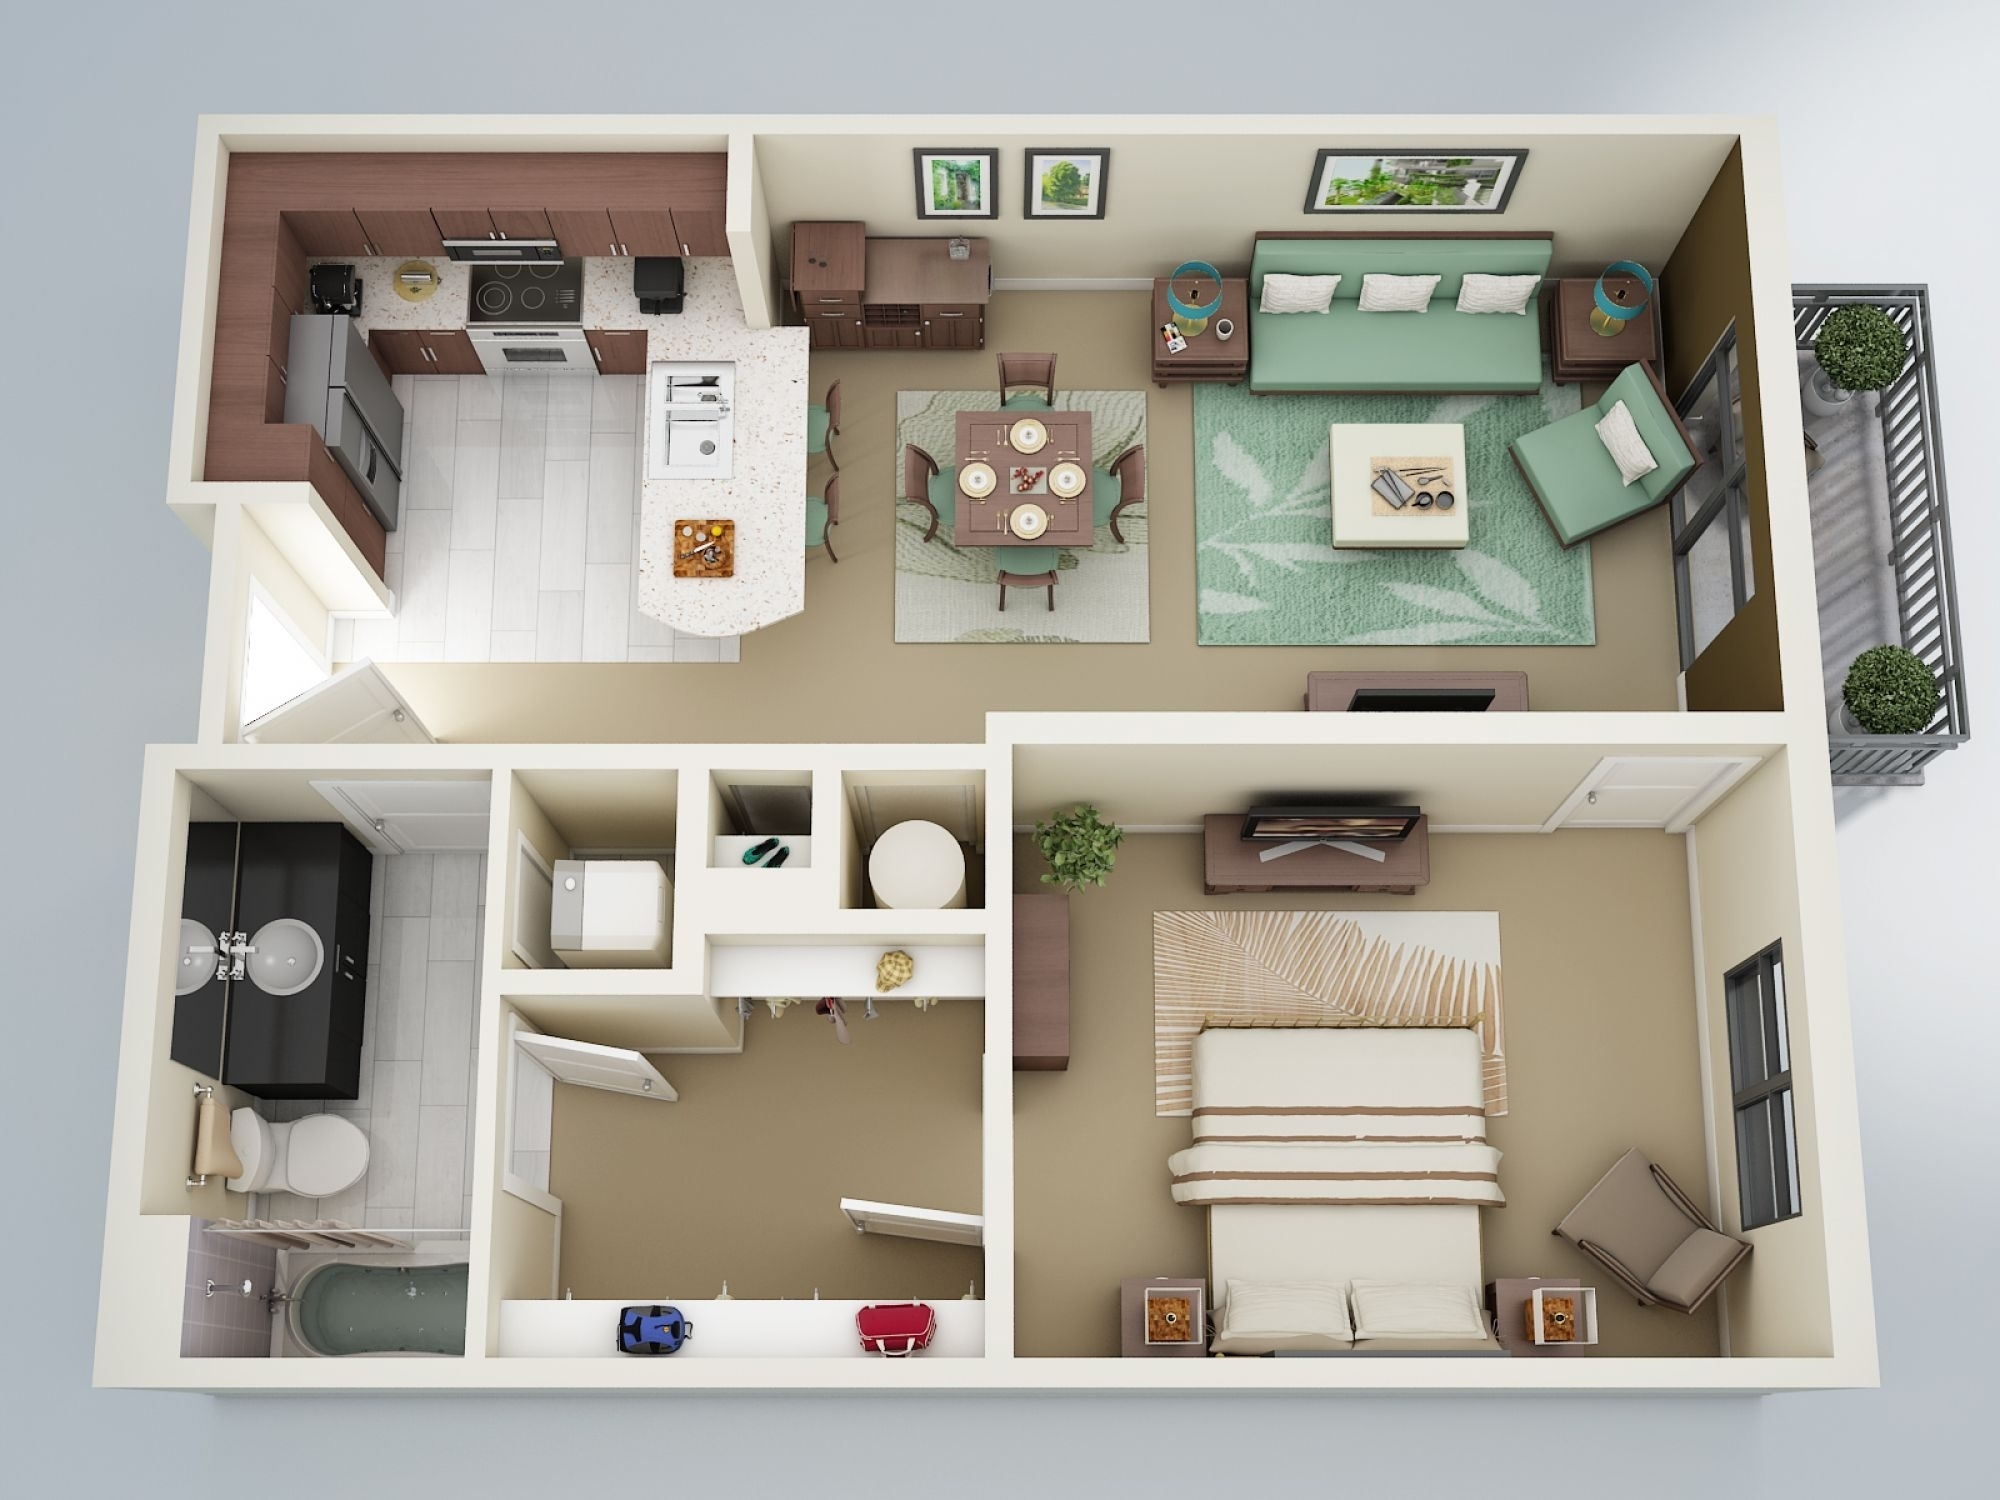 25+ Best Ideas About One Bedroom Apartments On Pinterest | One within Best Layout For Park Garden Apartments Design Ideas